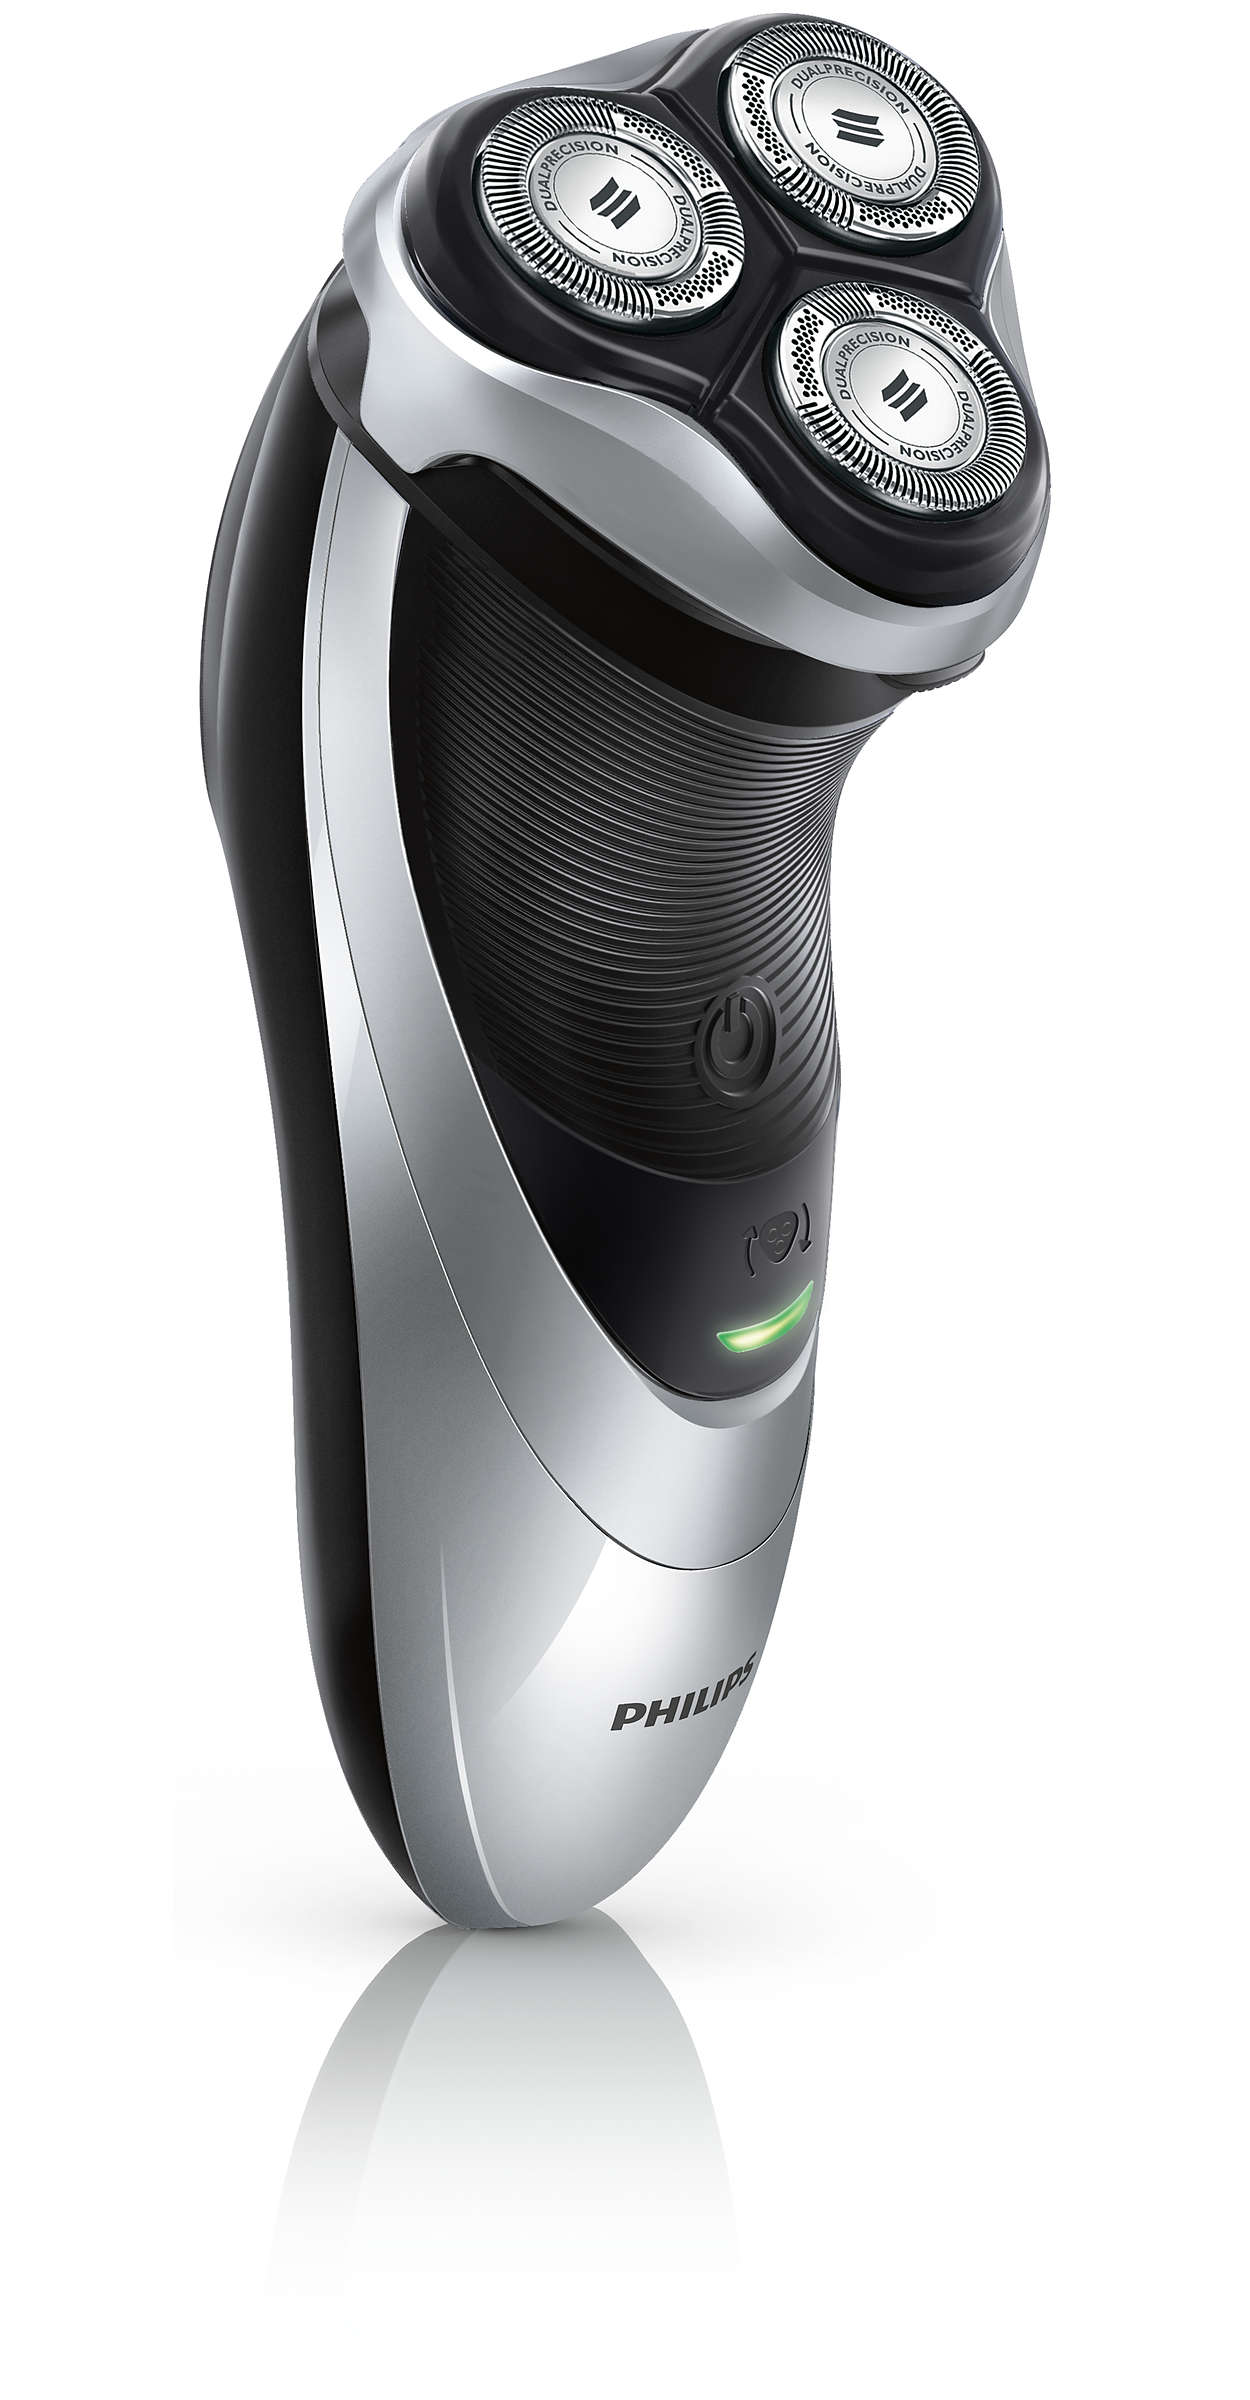 Philips PowerTouch system